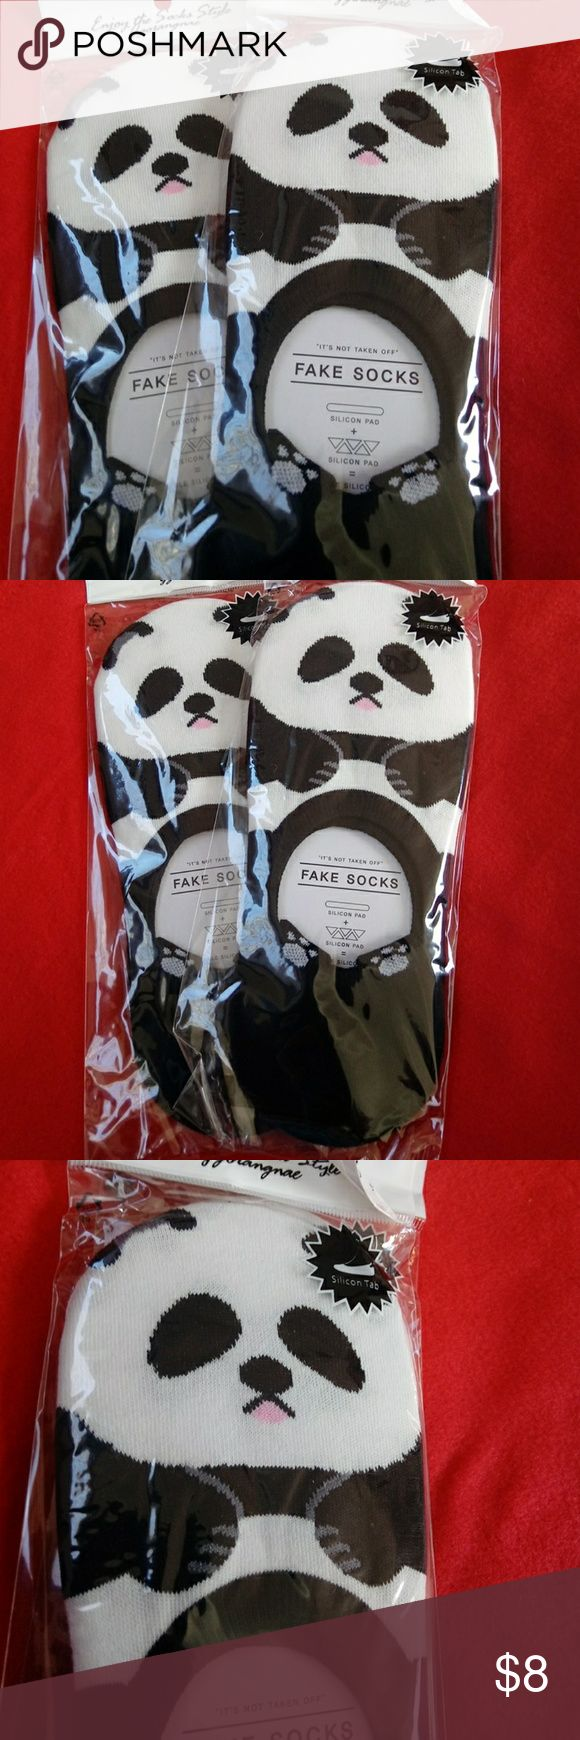 CUTE PANDA SOCKS Cute animal ankle socks. Cotton 75% Spandex 18% Polyester 6% Fits women sizev5-11 Accessories Hosiery & Socks #sockscute